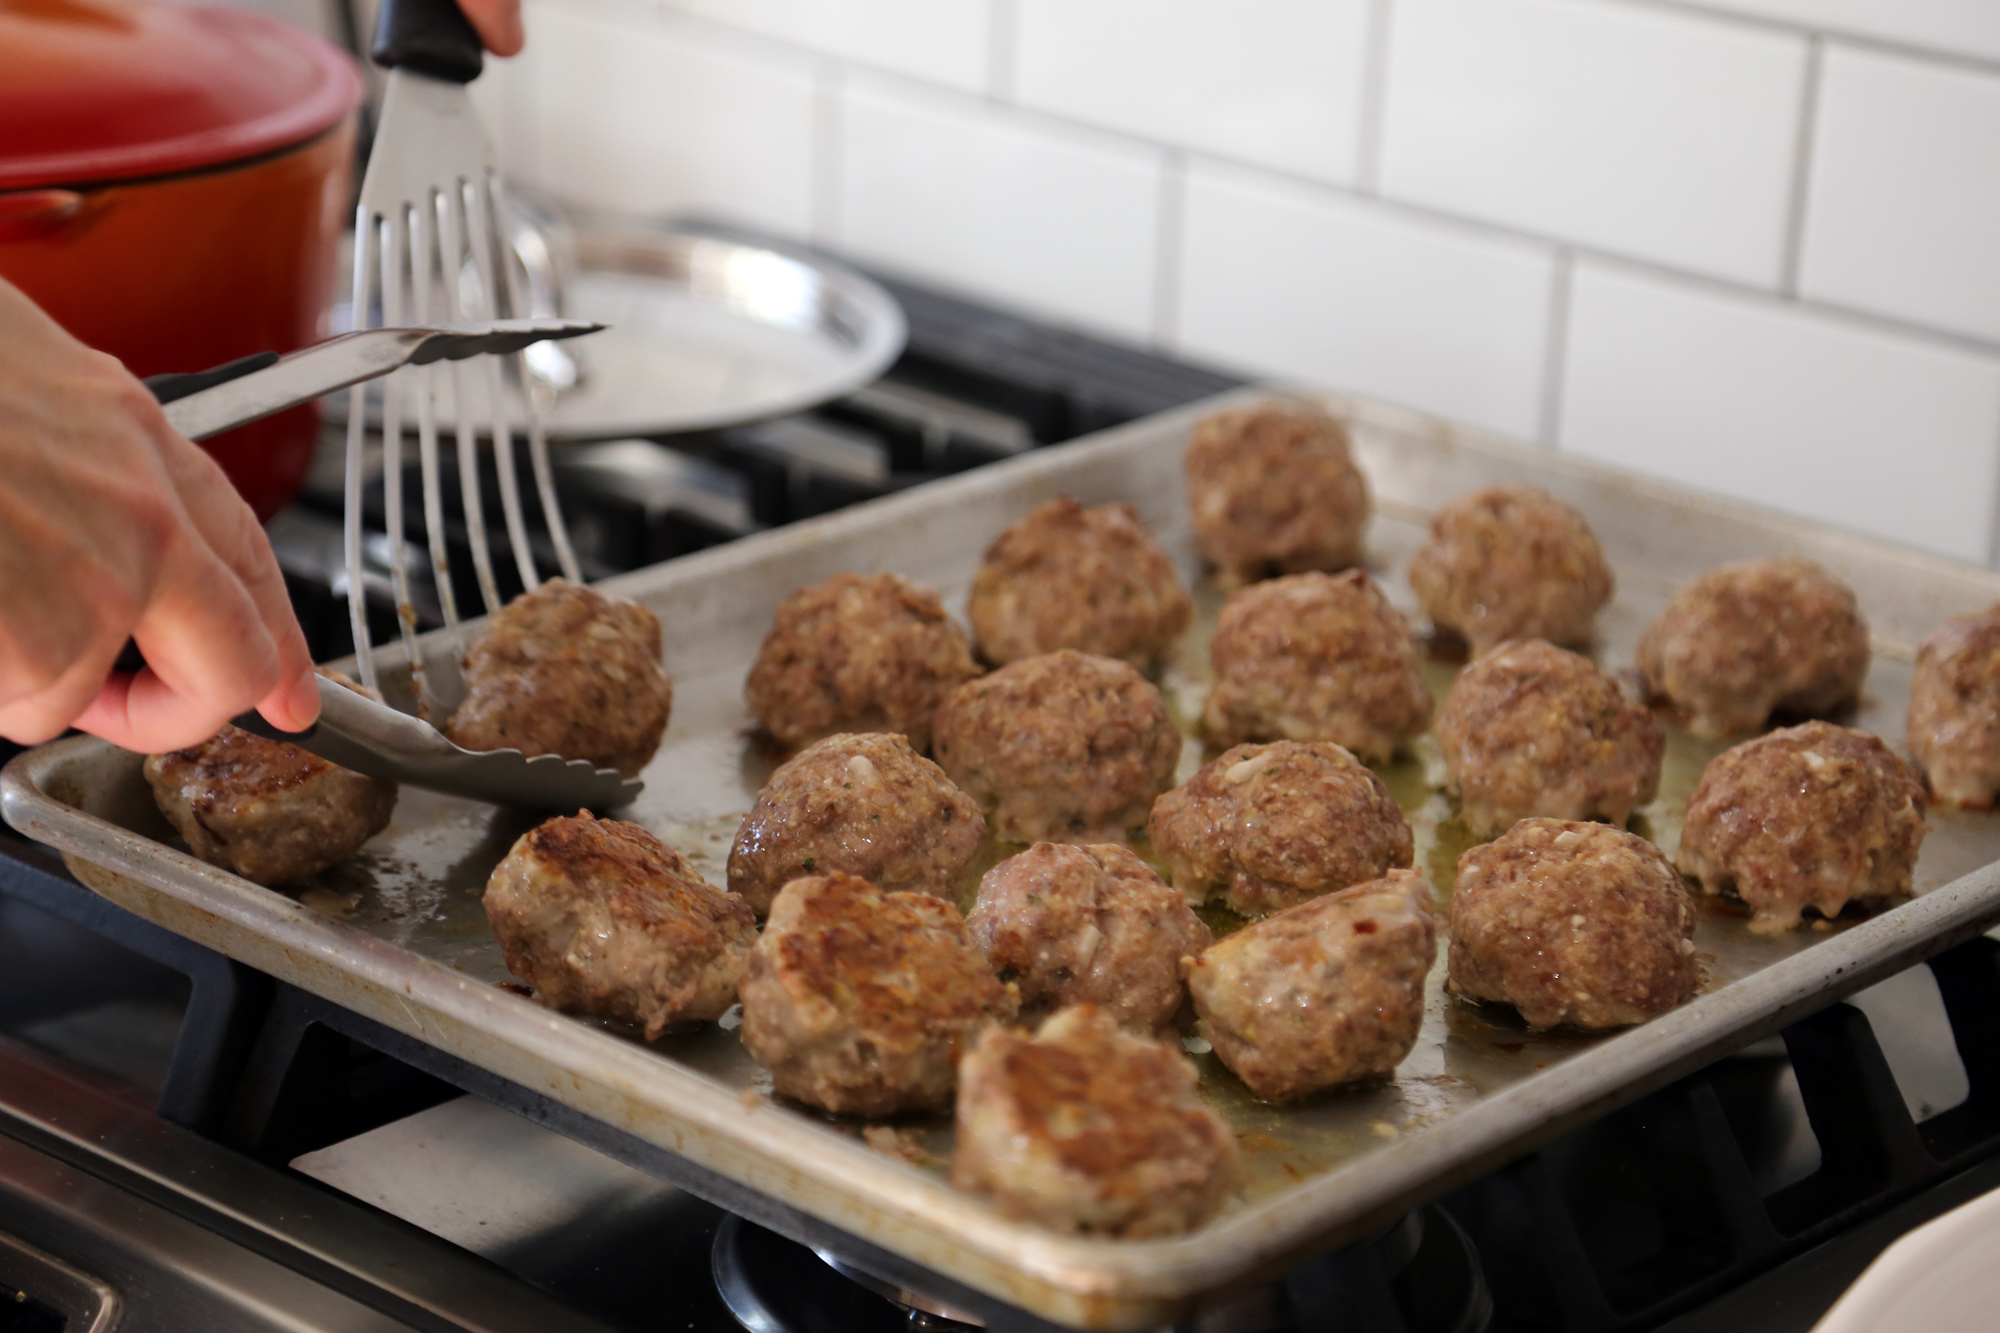 Roast the meatballs in the oven for about 20 minutes, until browned (you can turn once if you like).